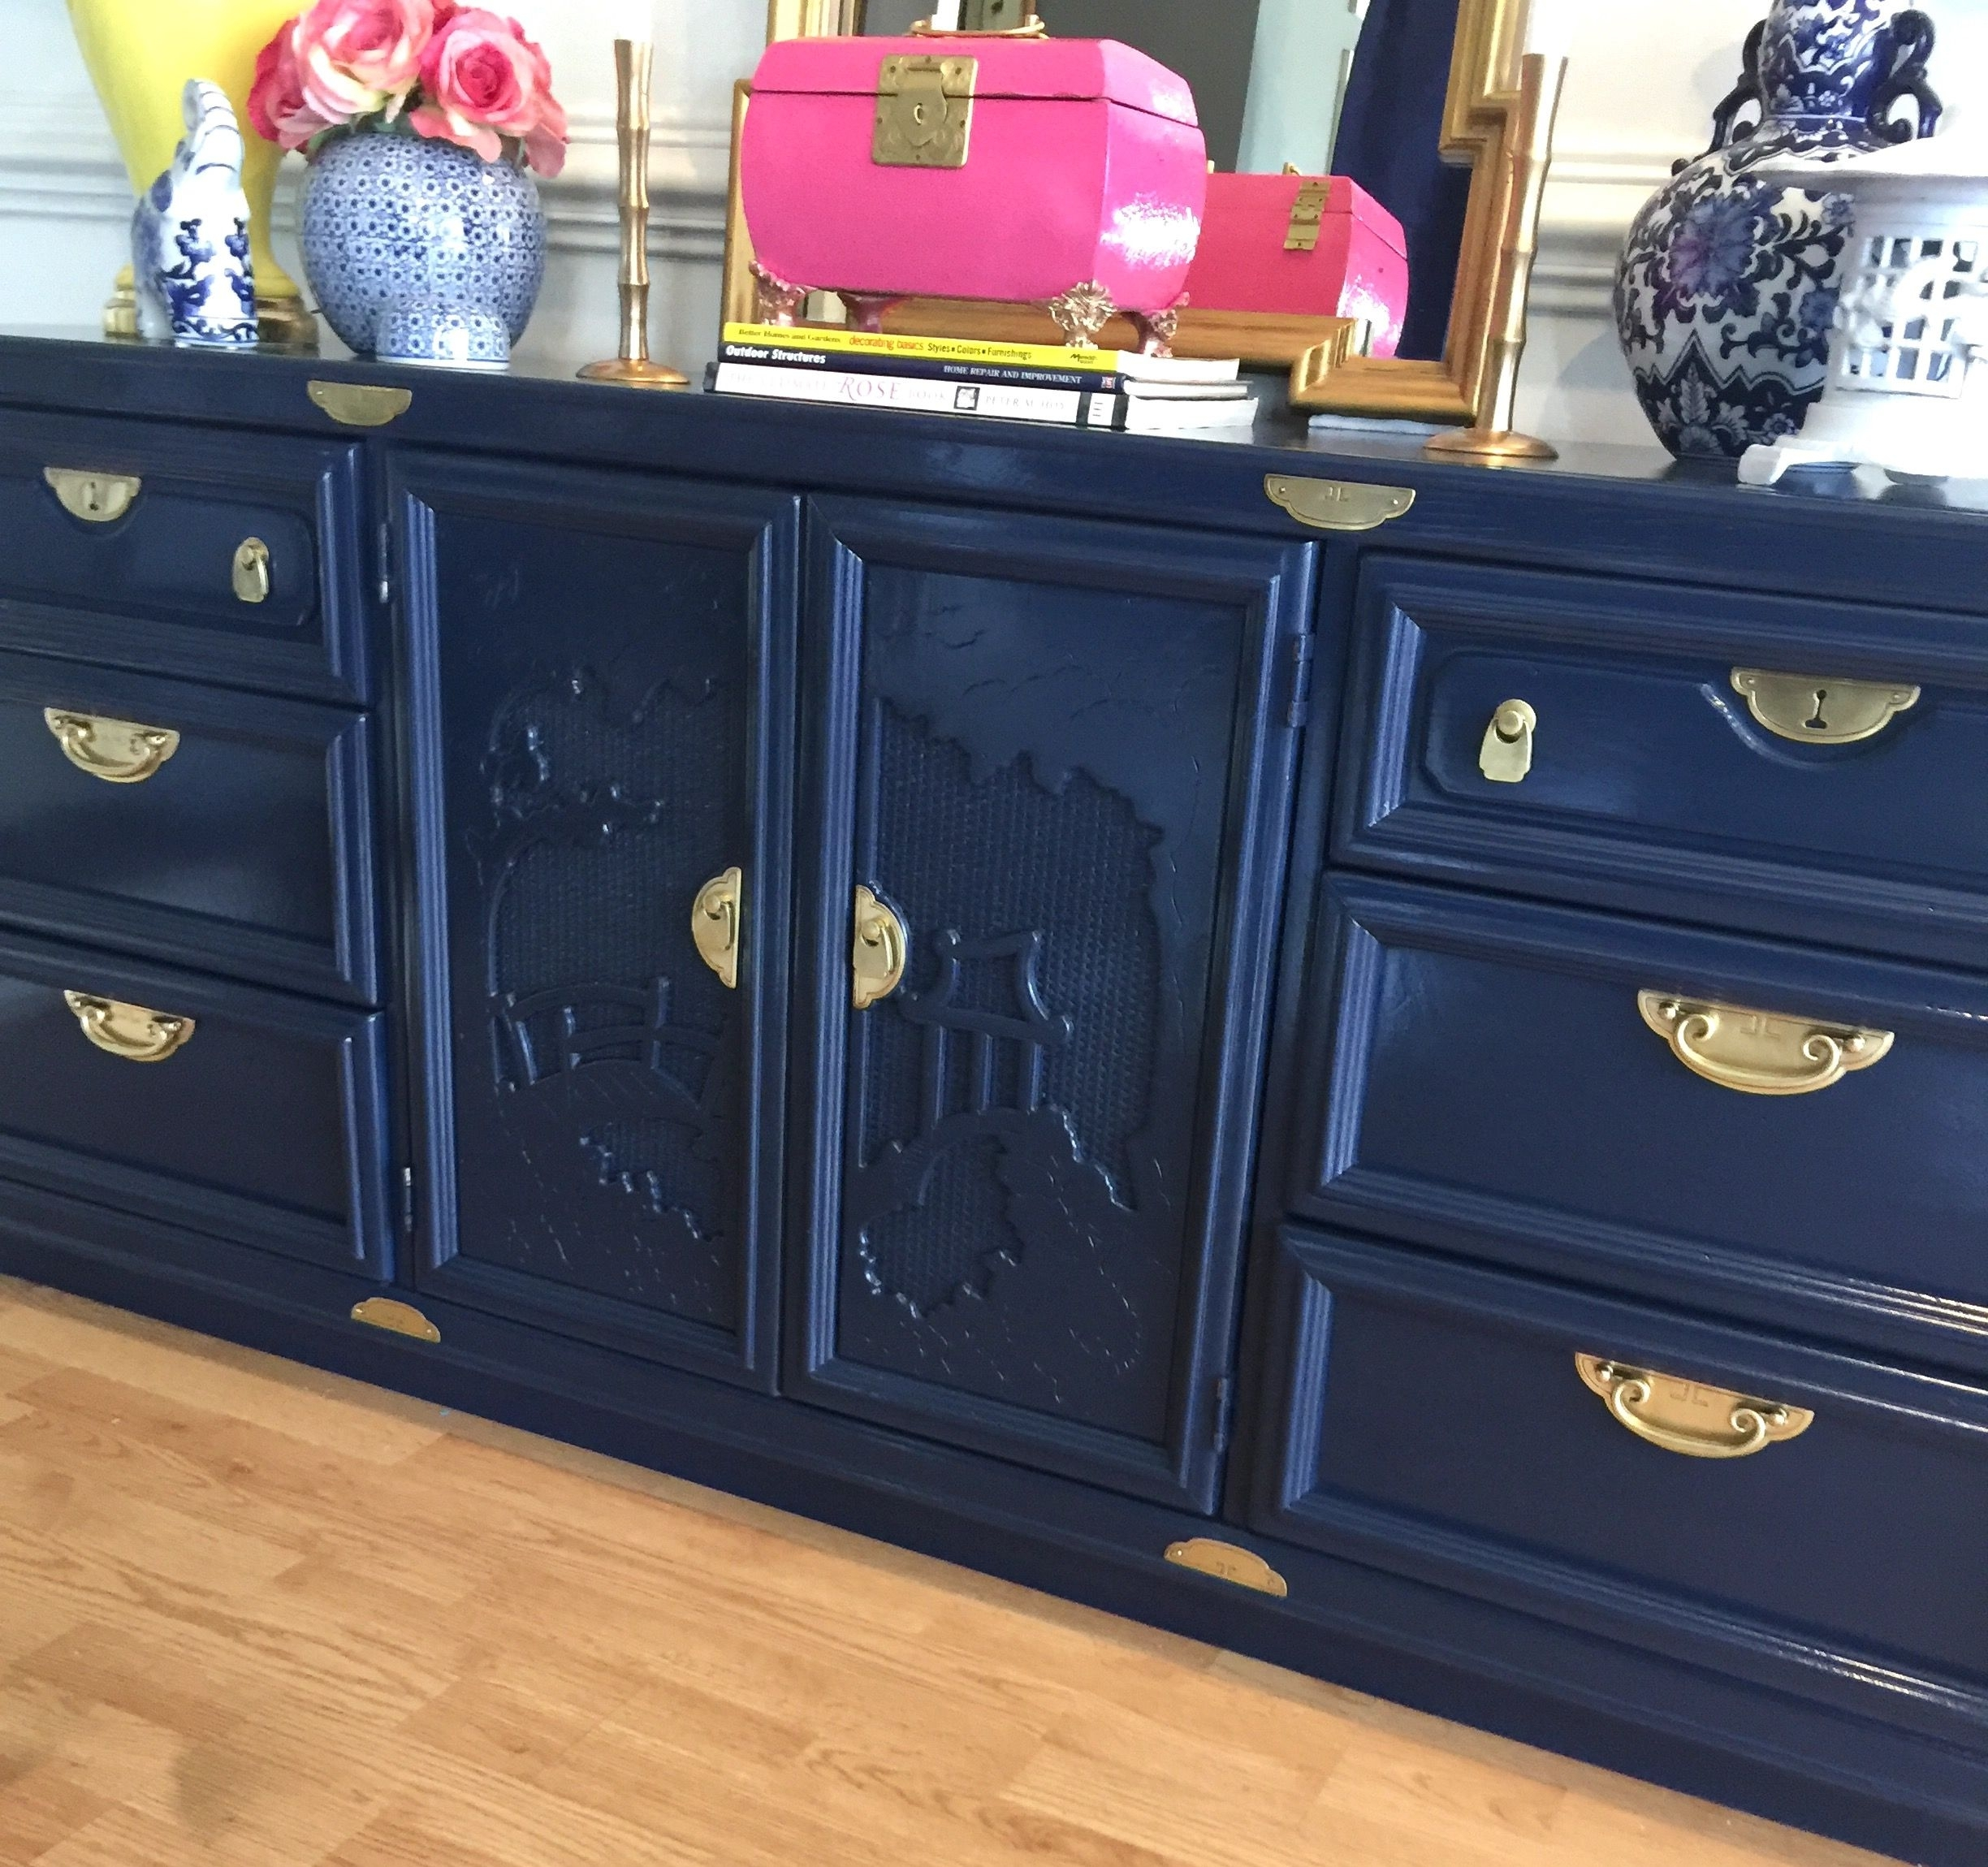 Deep Navy Lacquered Hollywood Regency Chinoiserie Buffet Sideboard throughout Solar Refinement Sideboards (Image 8 of 30)